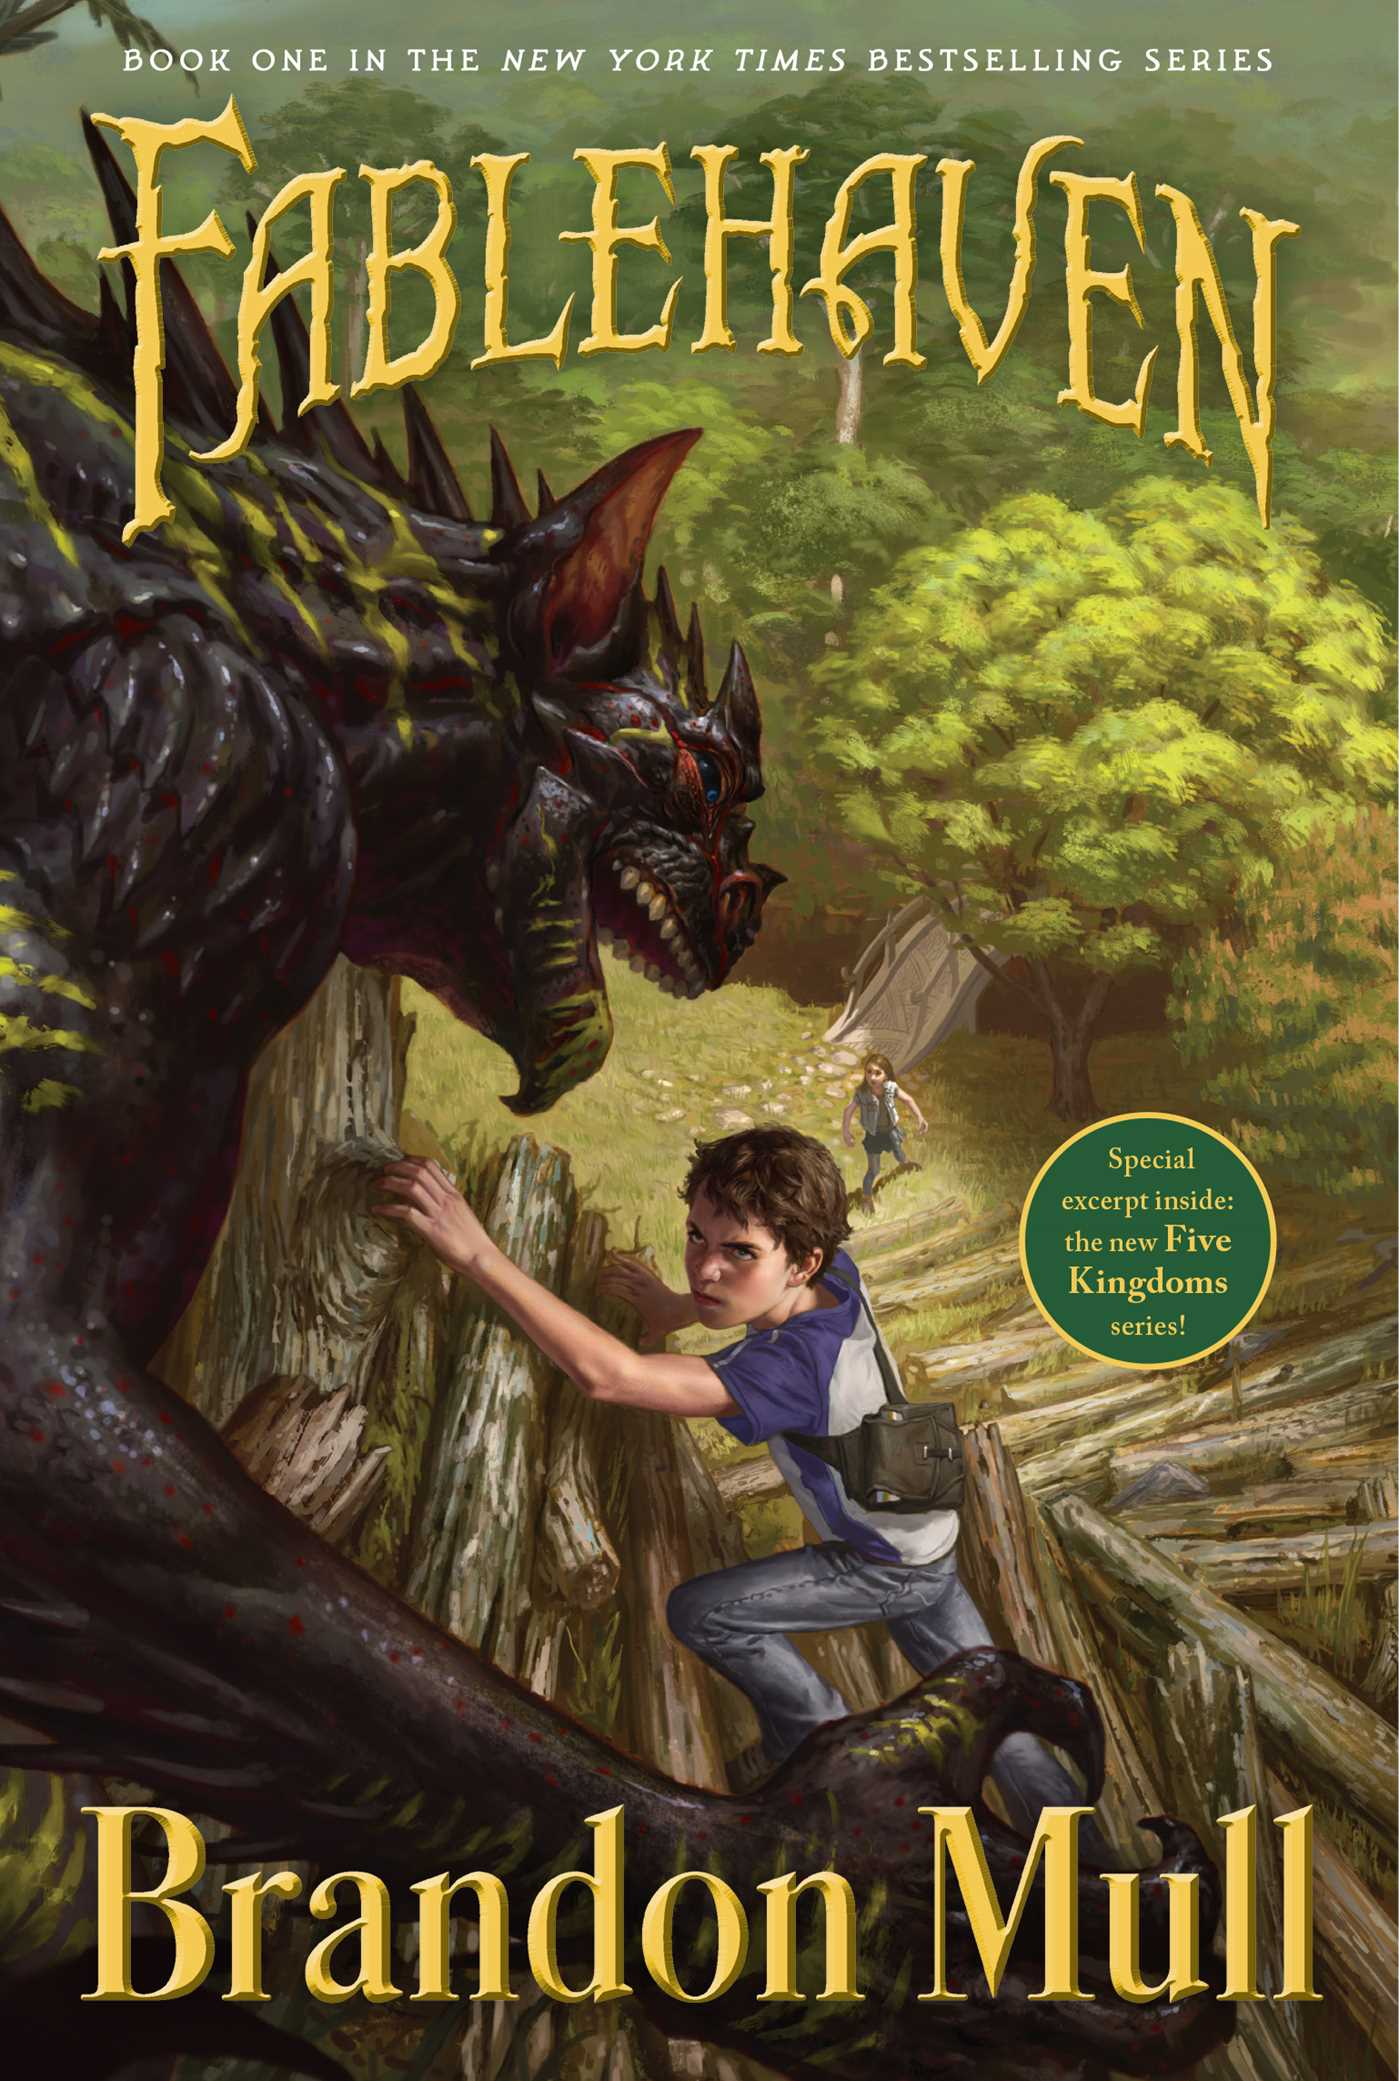 Image result for fablehaven book 1